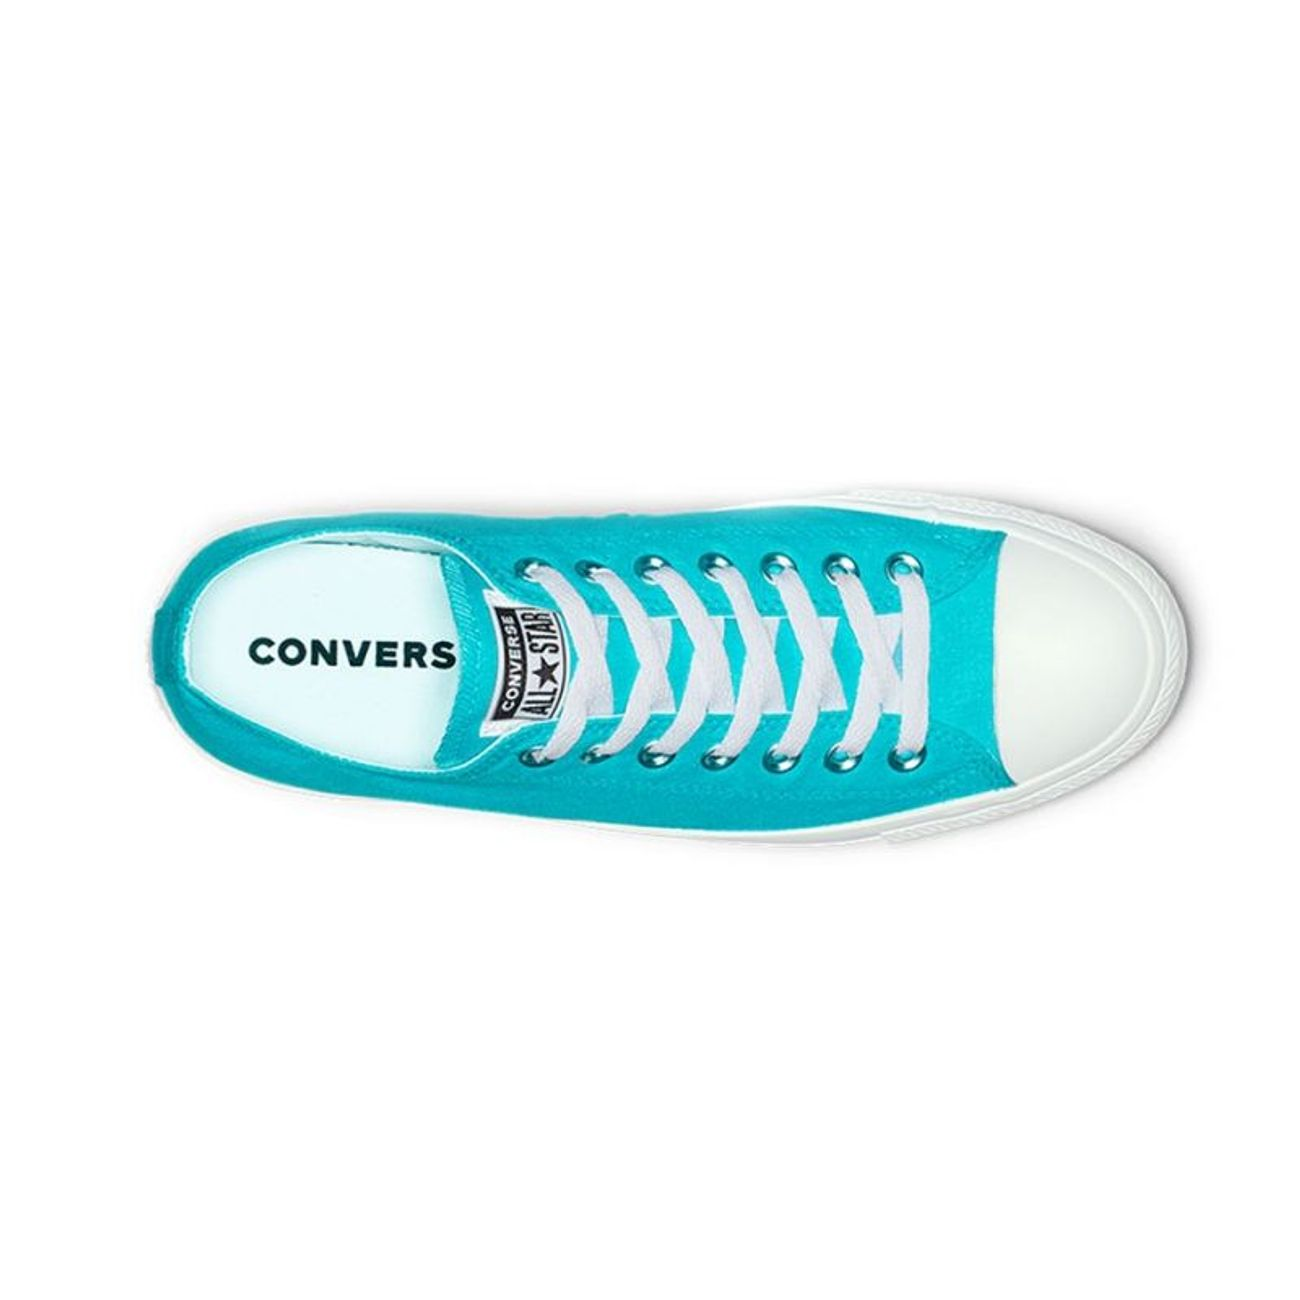 Adulte Bleu Court Converse Chuck Cv163182c Taylor Star Fade Padel Blanc All Top Low kXOTZwPiu